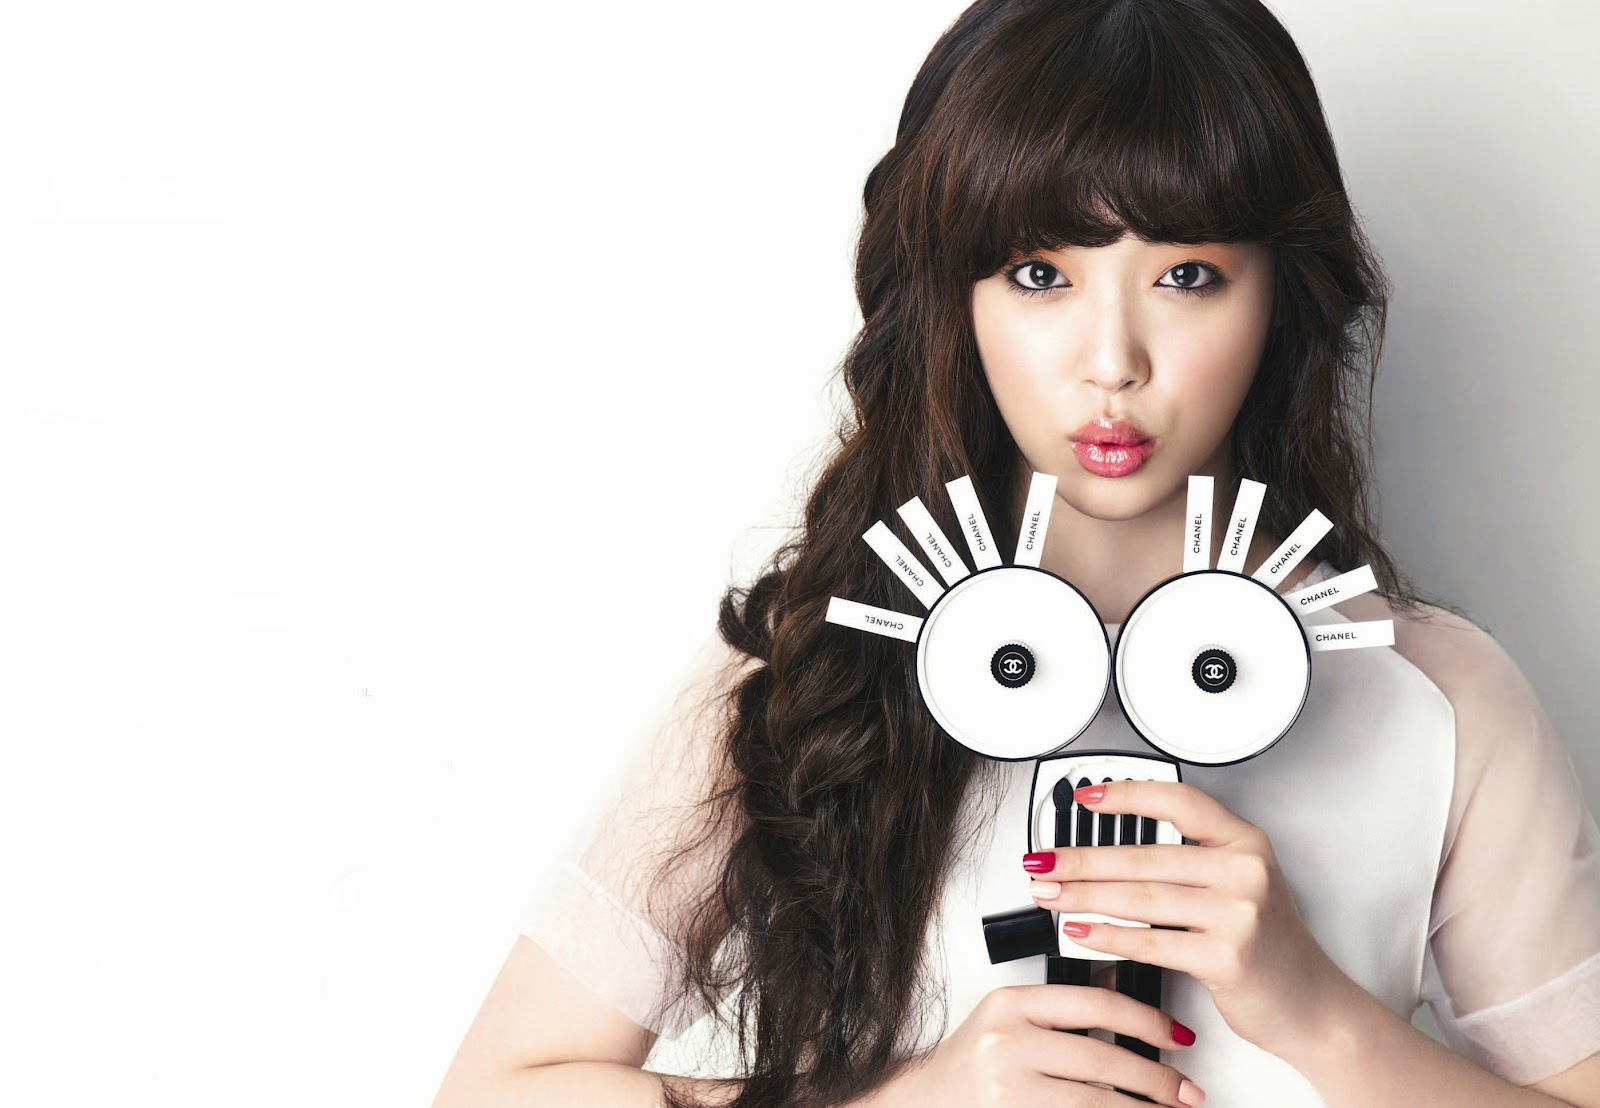 f(x)'s Sulli Makes a Weird yet Adorable Fashion Statement